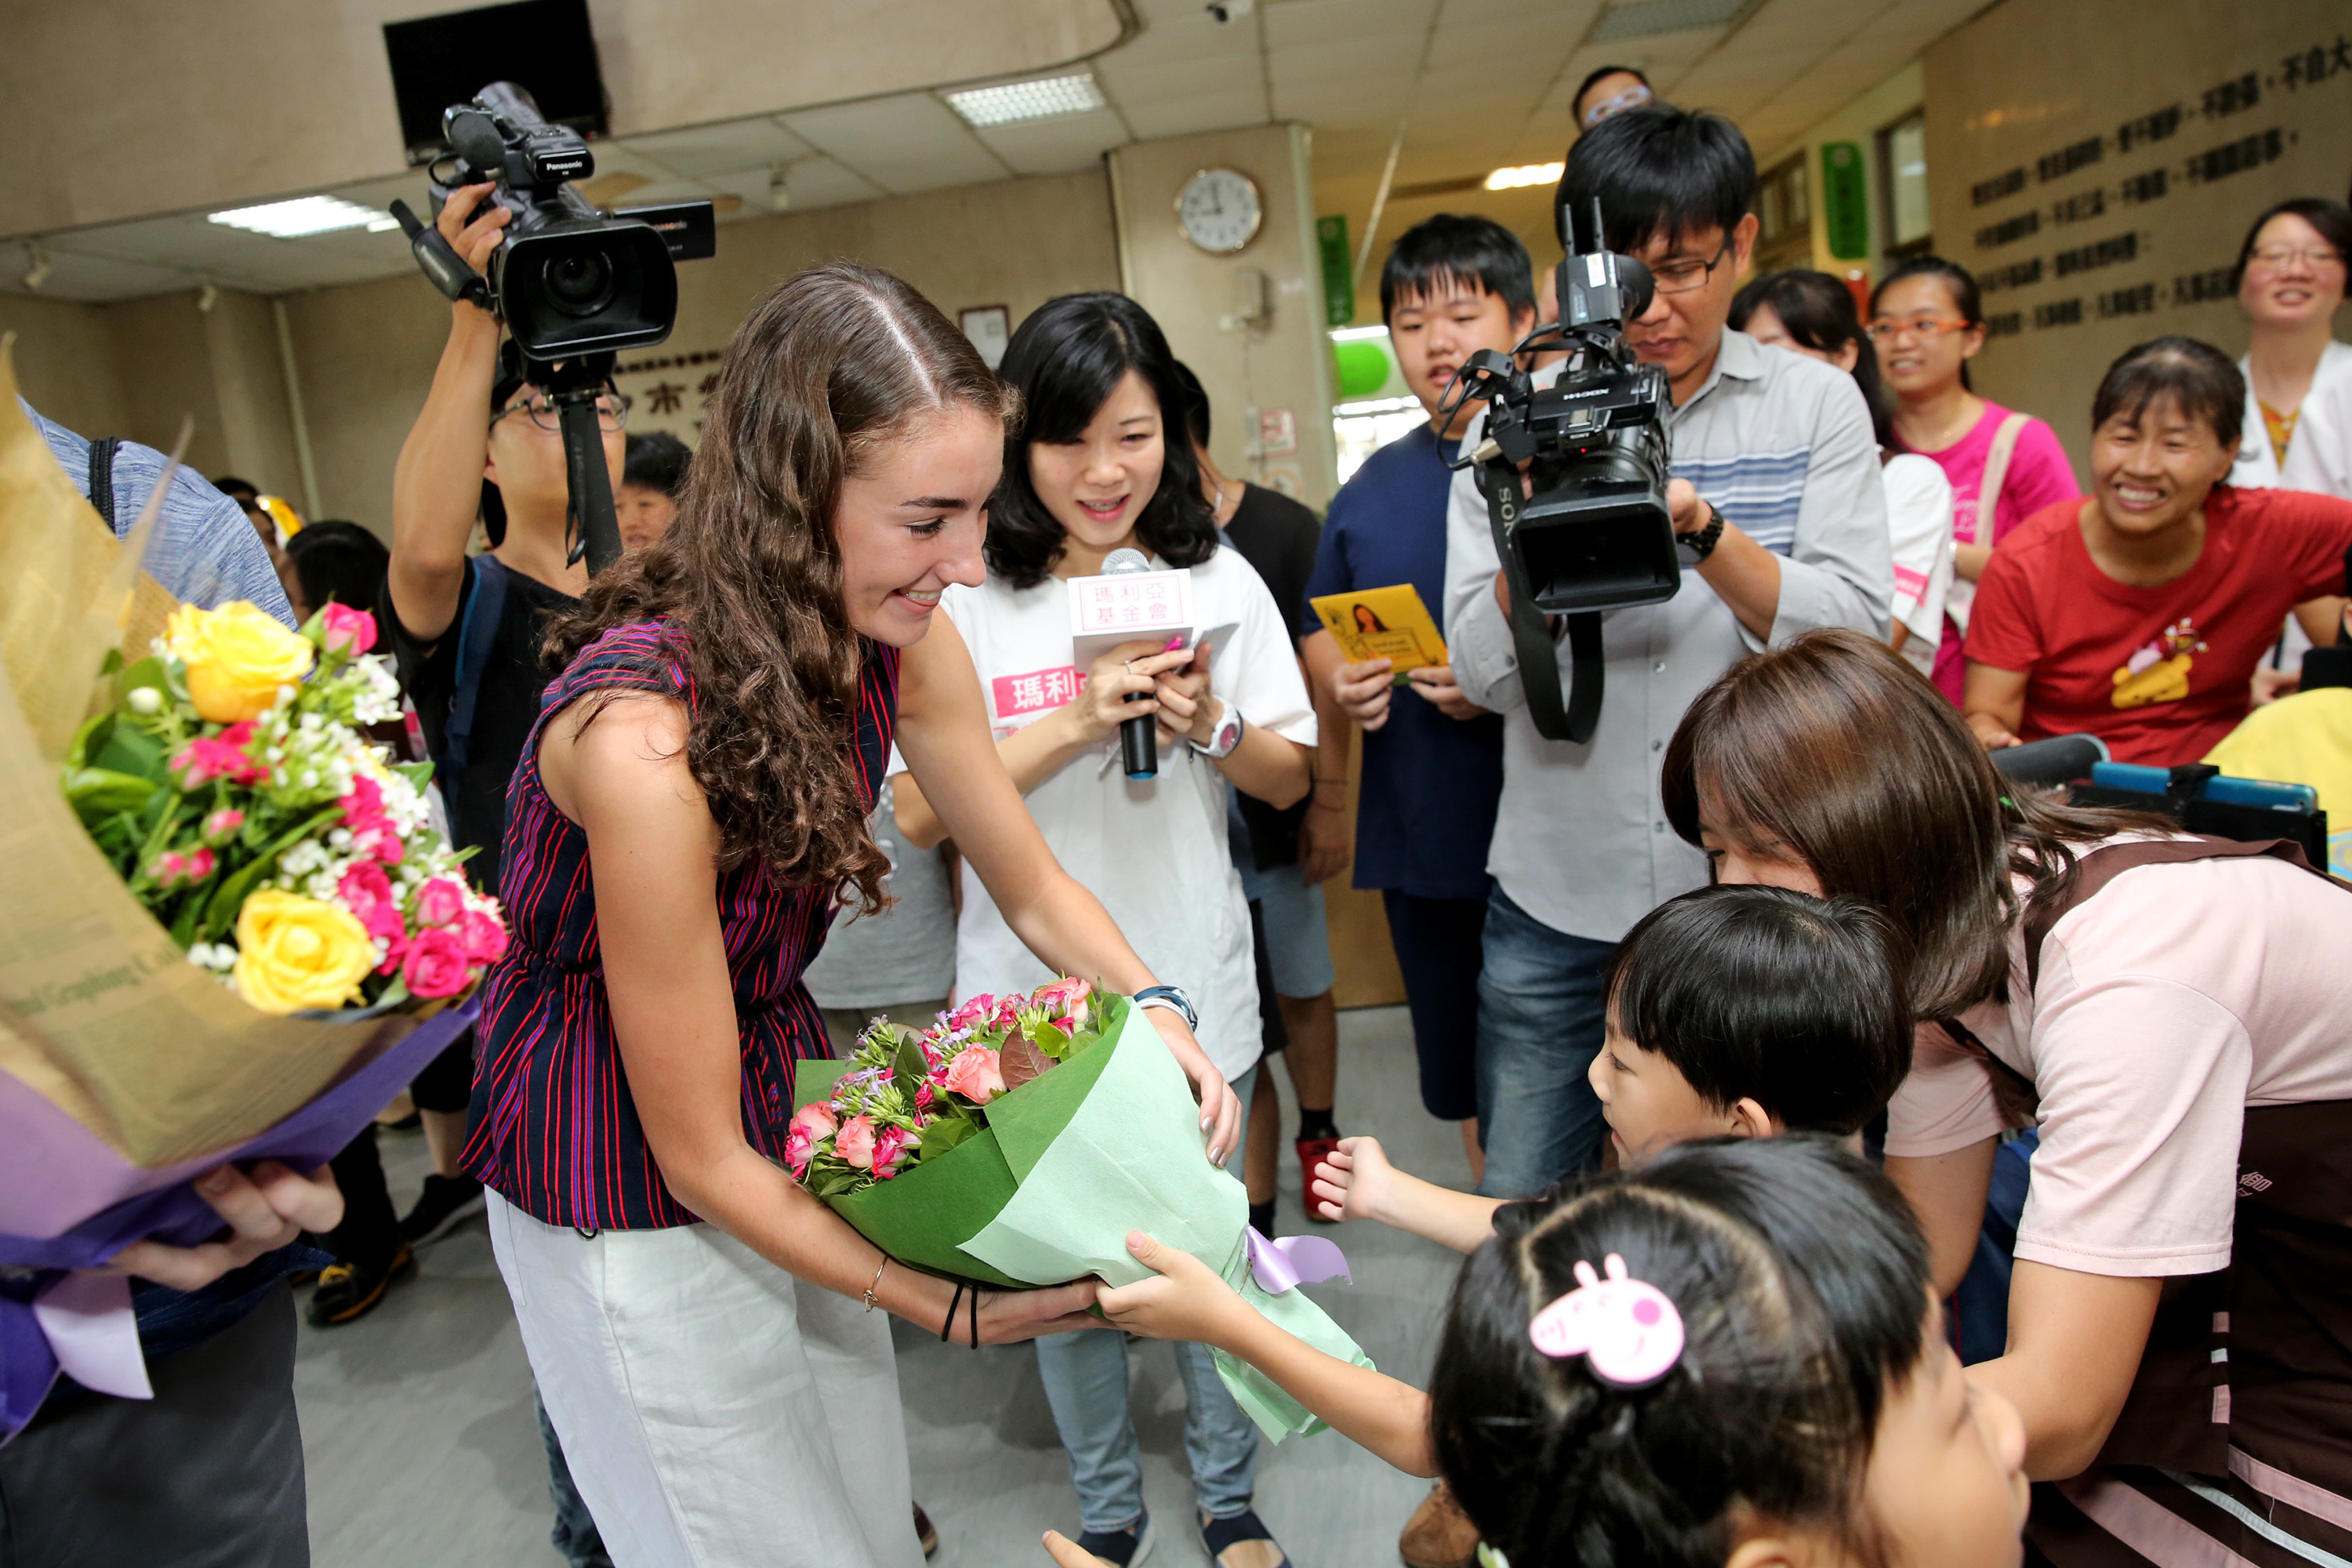 Katherine Commale, 17, is given flowers as she arrives at the Maria Social Welfare Foundation in Taiwan June 13, 2018. Commale and her family just returned from the trip to Taiwan where she gave a TED-type talk and met the president. DO not credit TOM GRALISH / Staff Photographer Credit: Maria Social Welfare Foundation of Taiwan